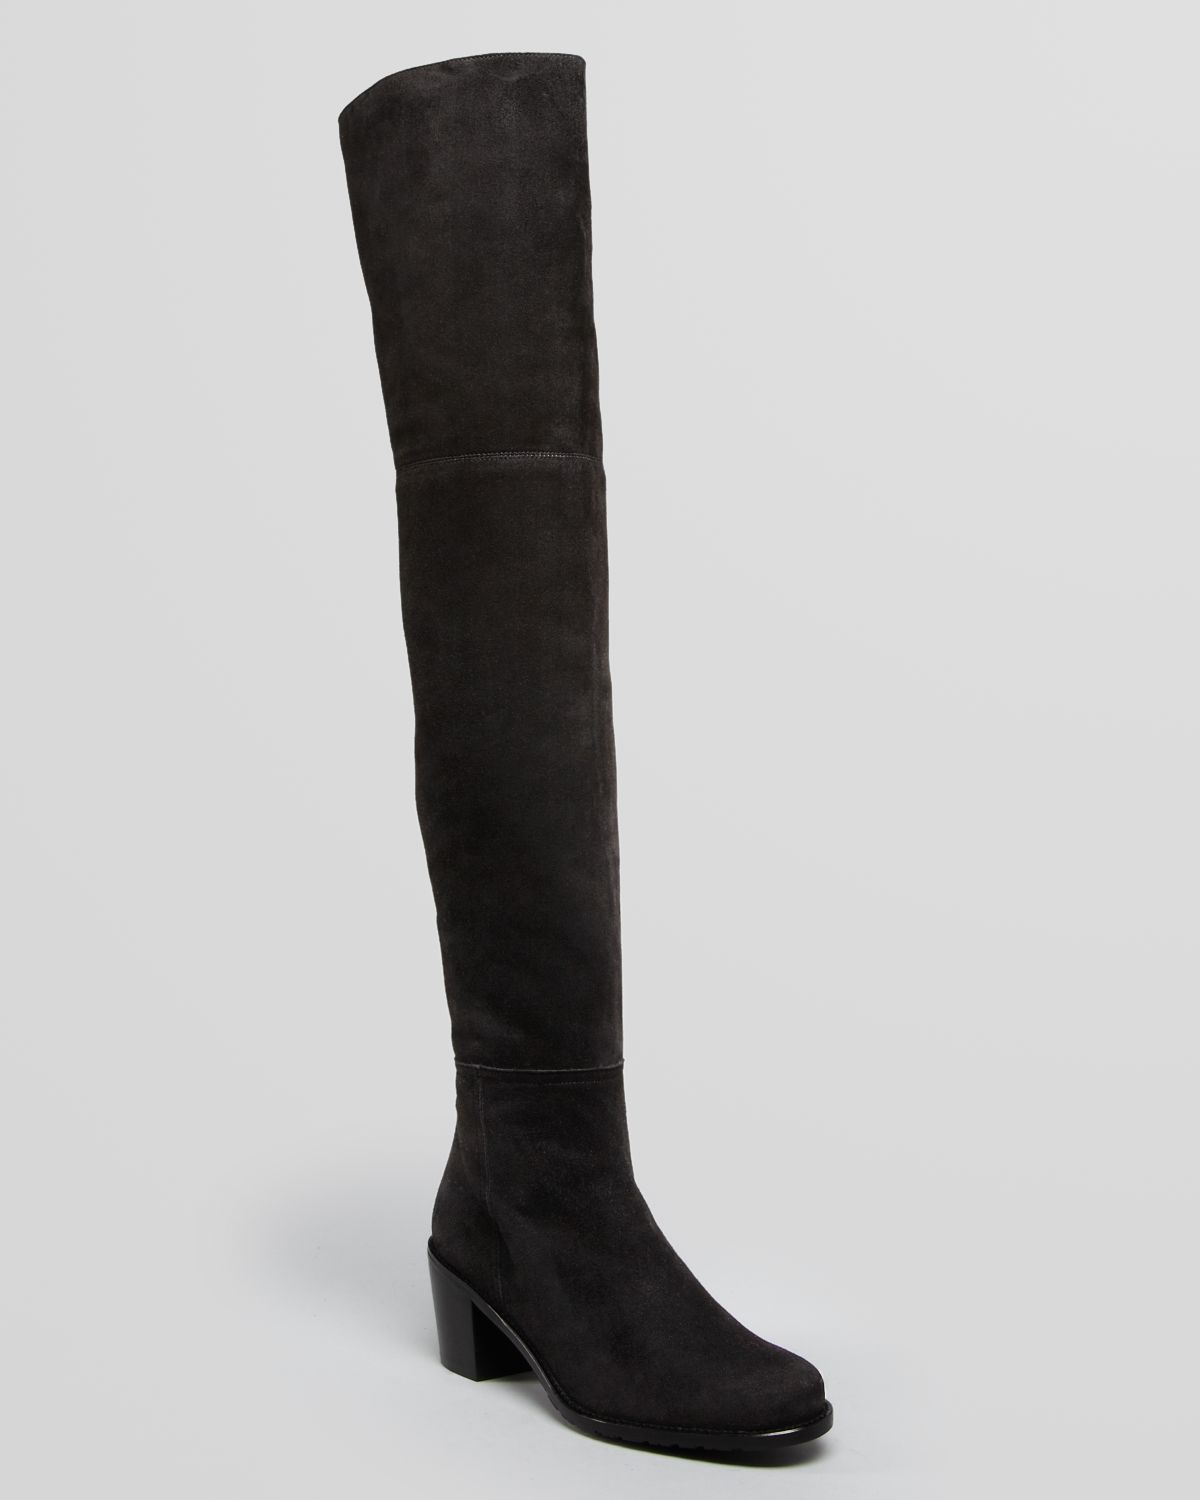 Stuart Weitzman Over The Knee Boots - Hitest Mid Heel | Bloomingdale's